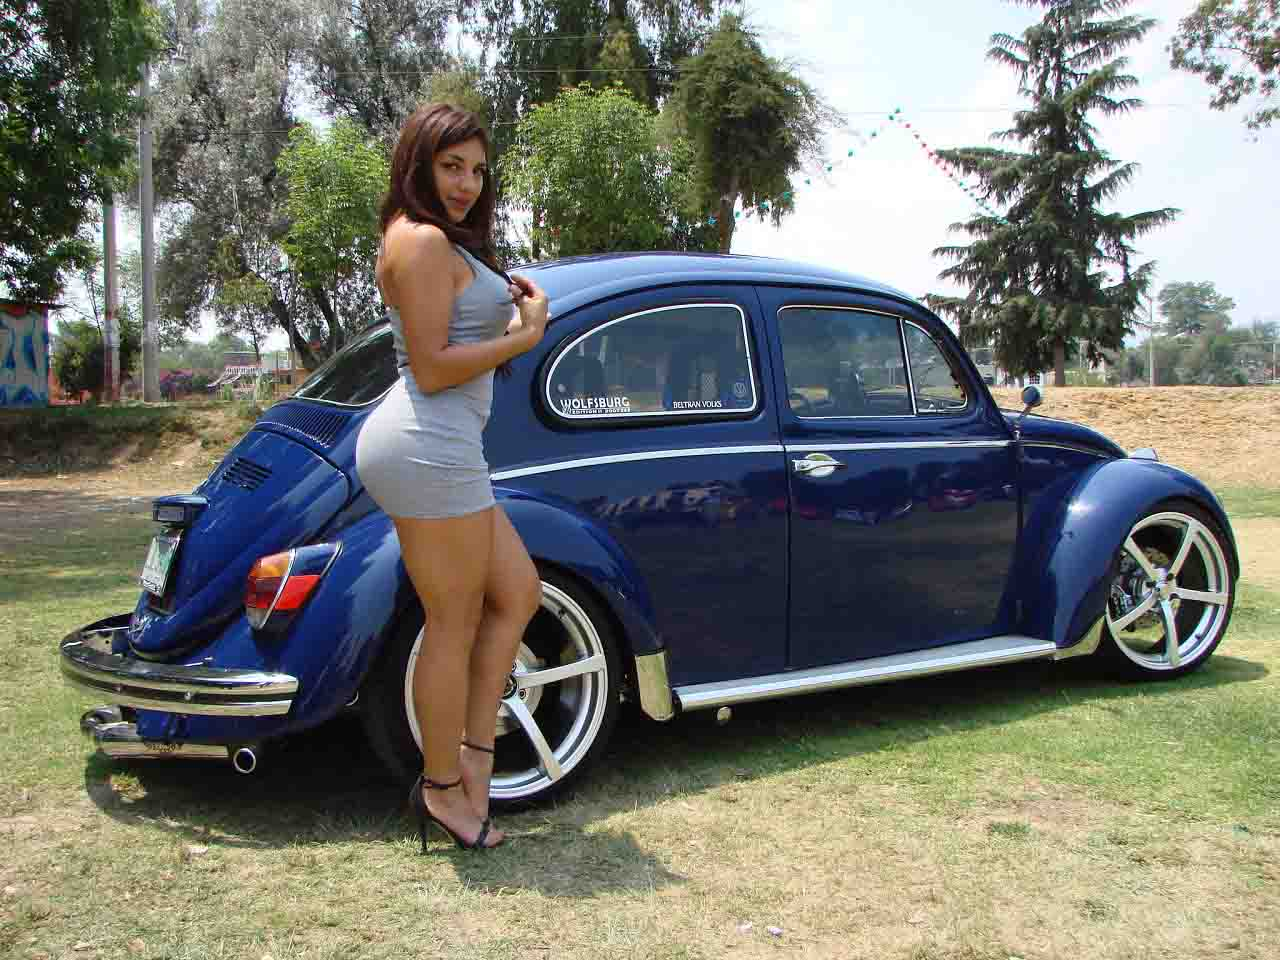 She's bad volkswagen girl love